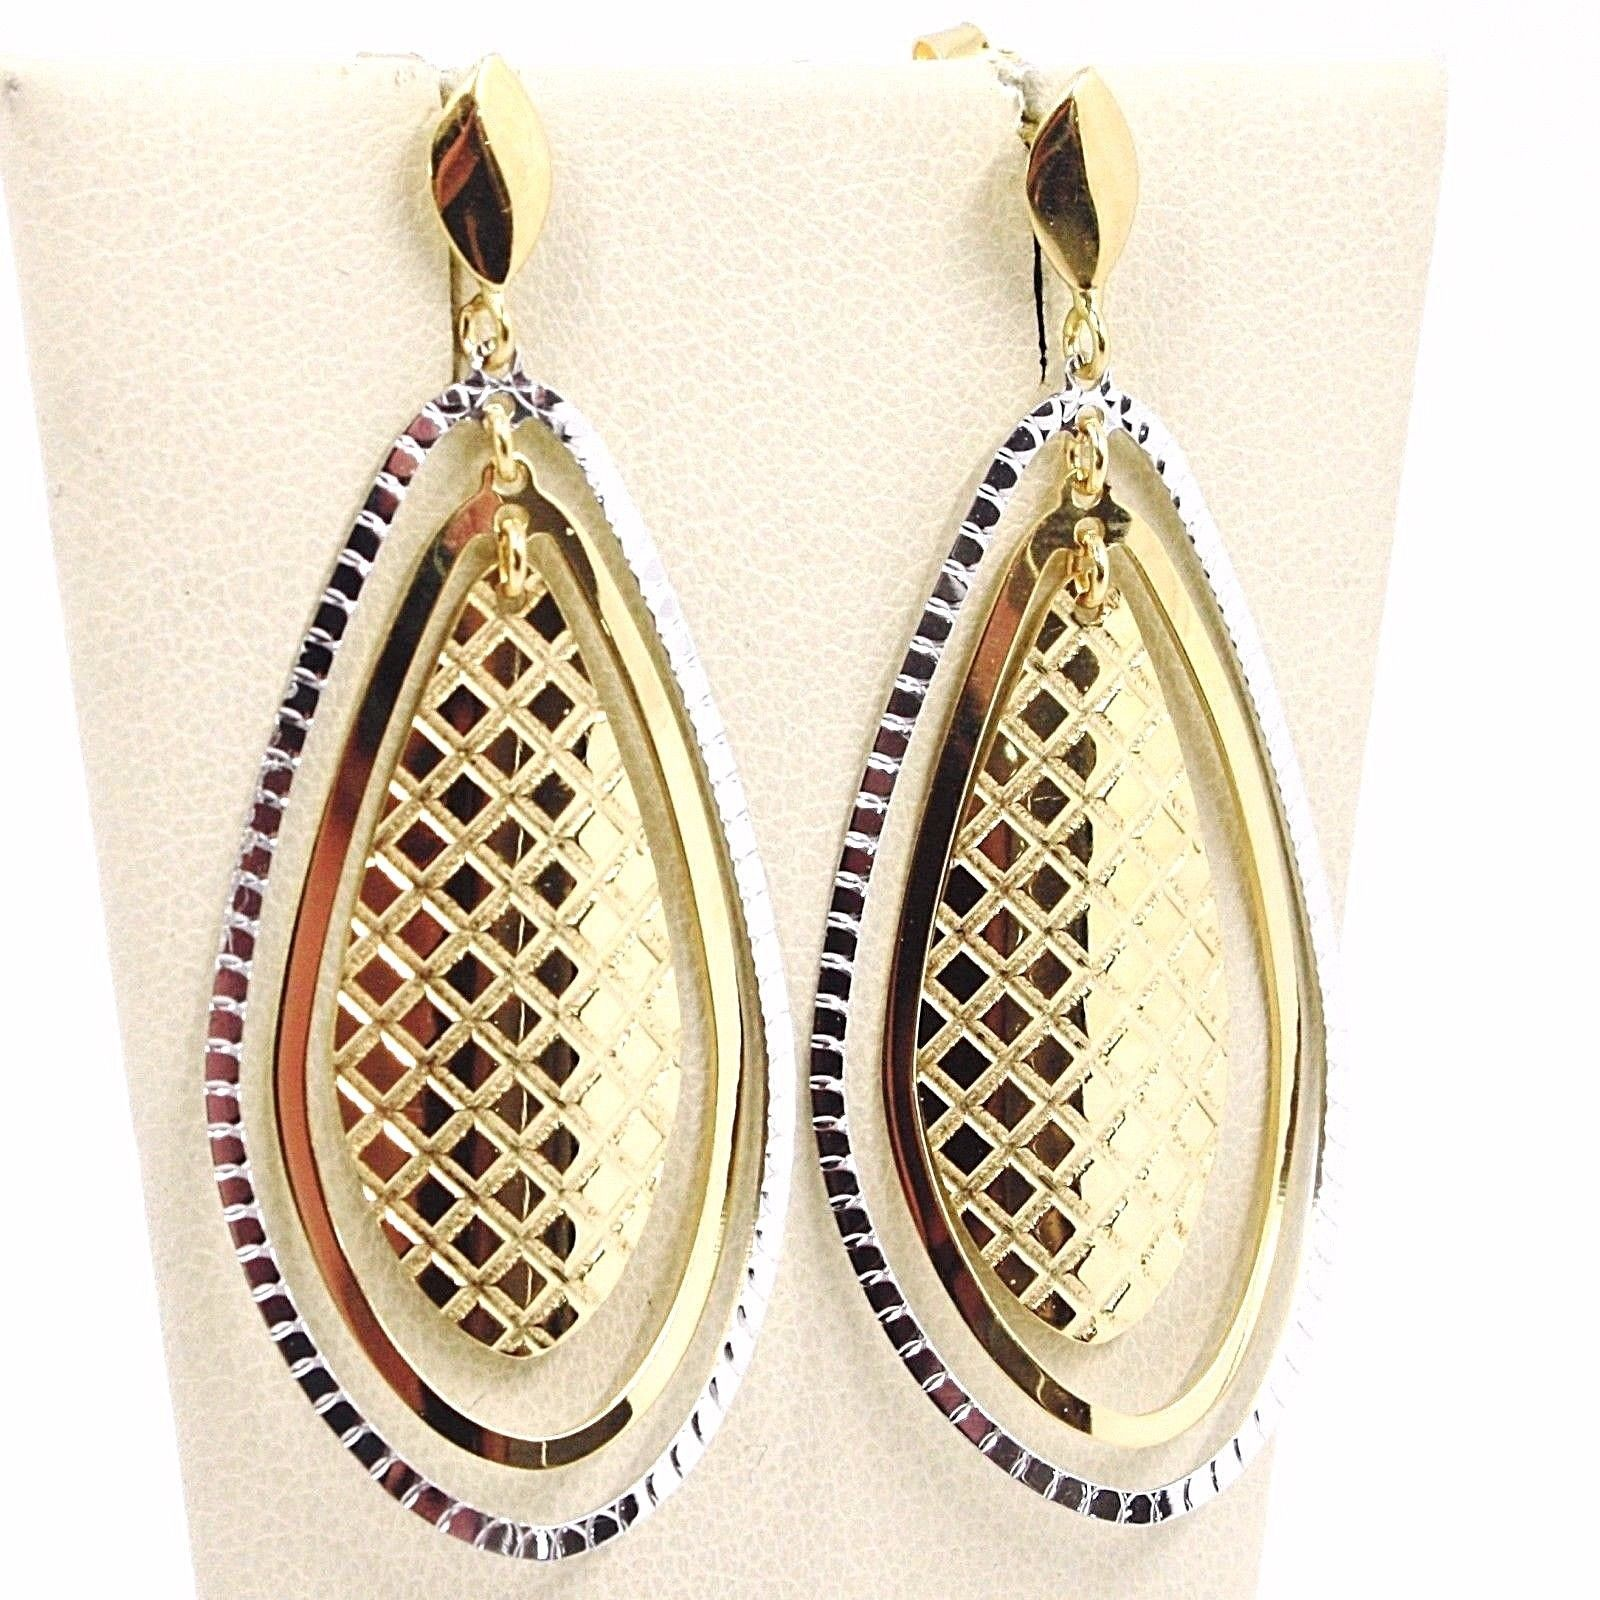 BOUCLES D'OREILLES PENDANTES OR JAUNE BLANC 750 18K,TRIPLE GOUTTE,MADE IN ITALY